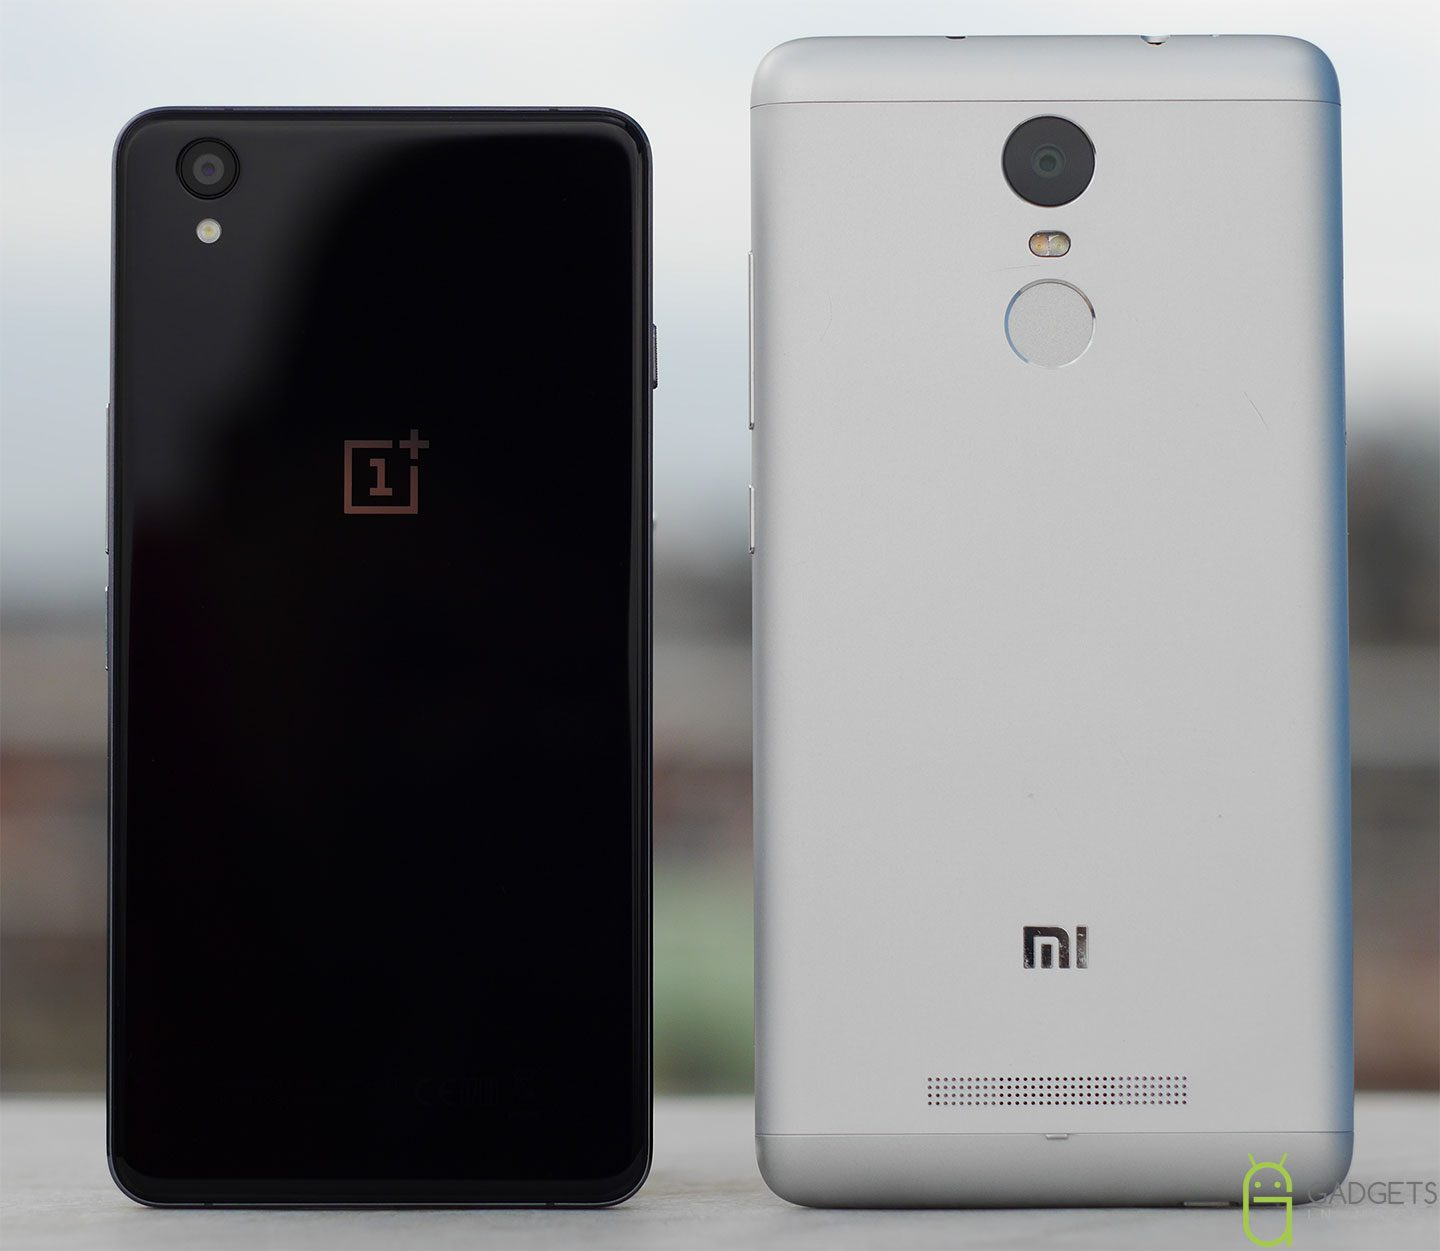 Oneplus X vs Redmi Note 3